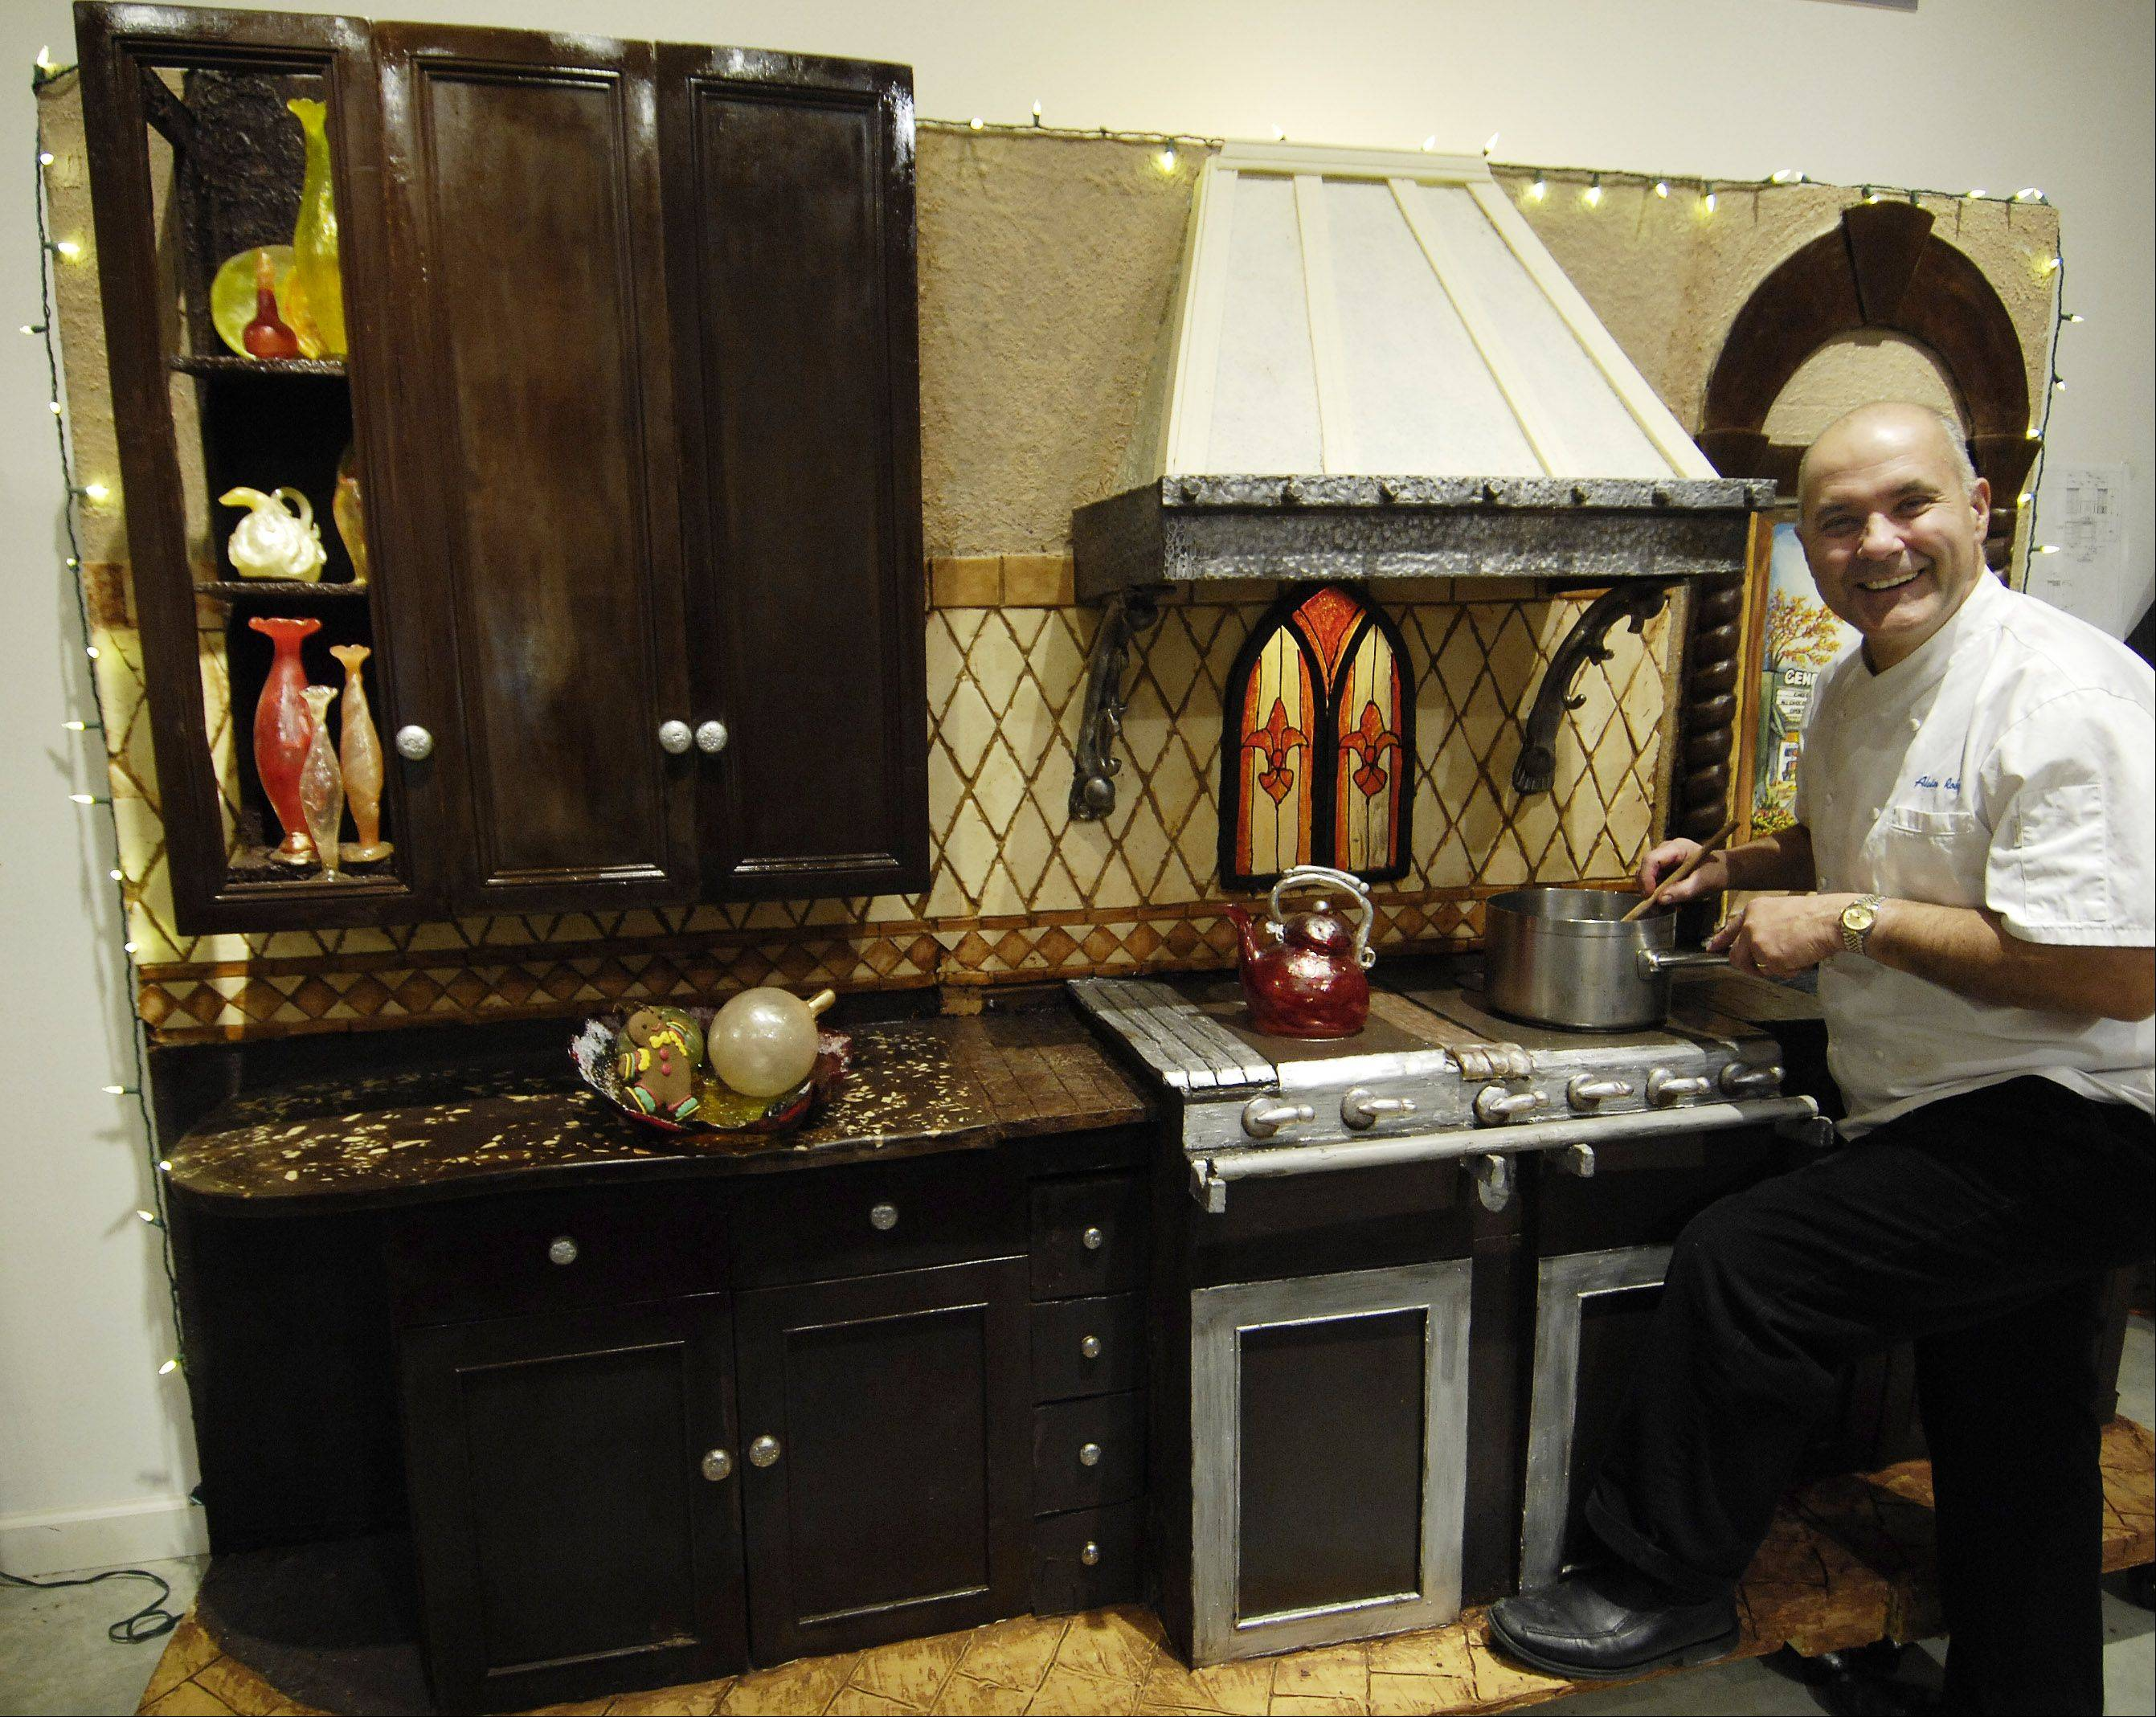 Chef Alain Roby poses with his life-size chocolate kitchen in his downtown Geneva kitchen.